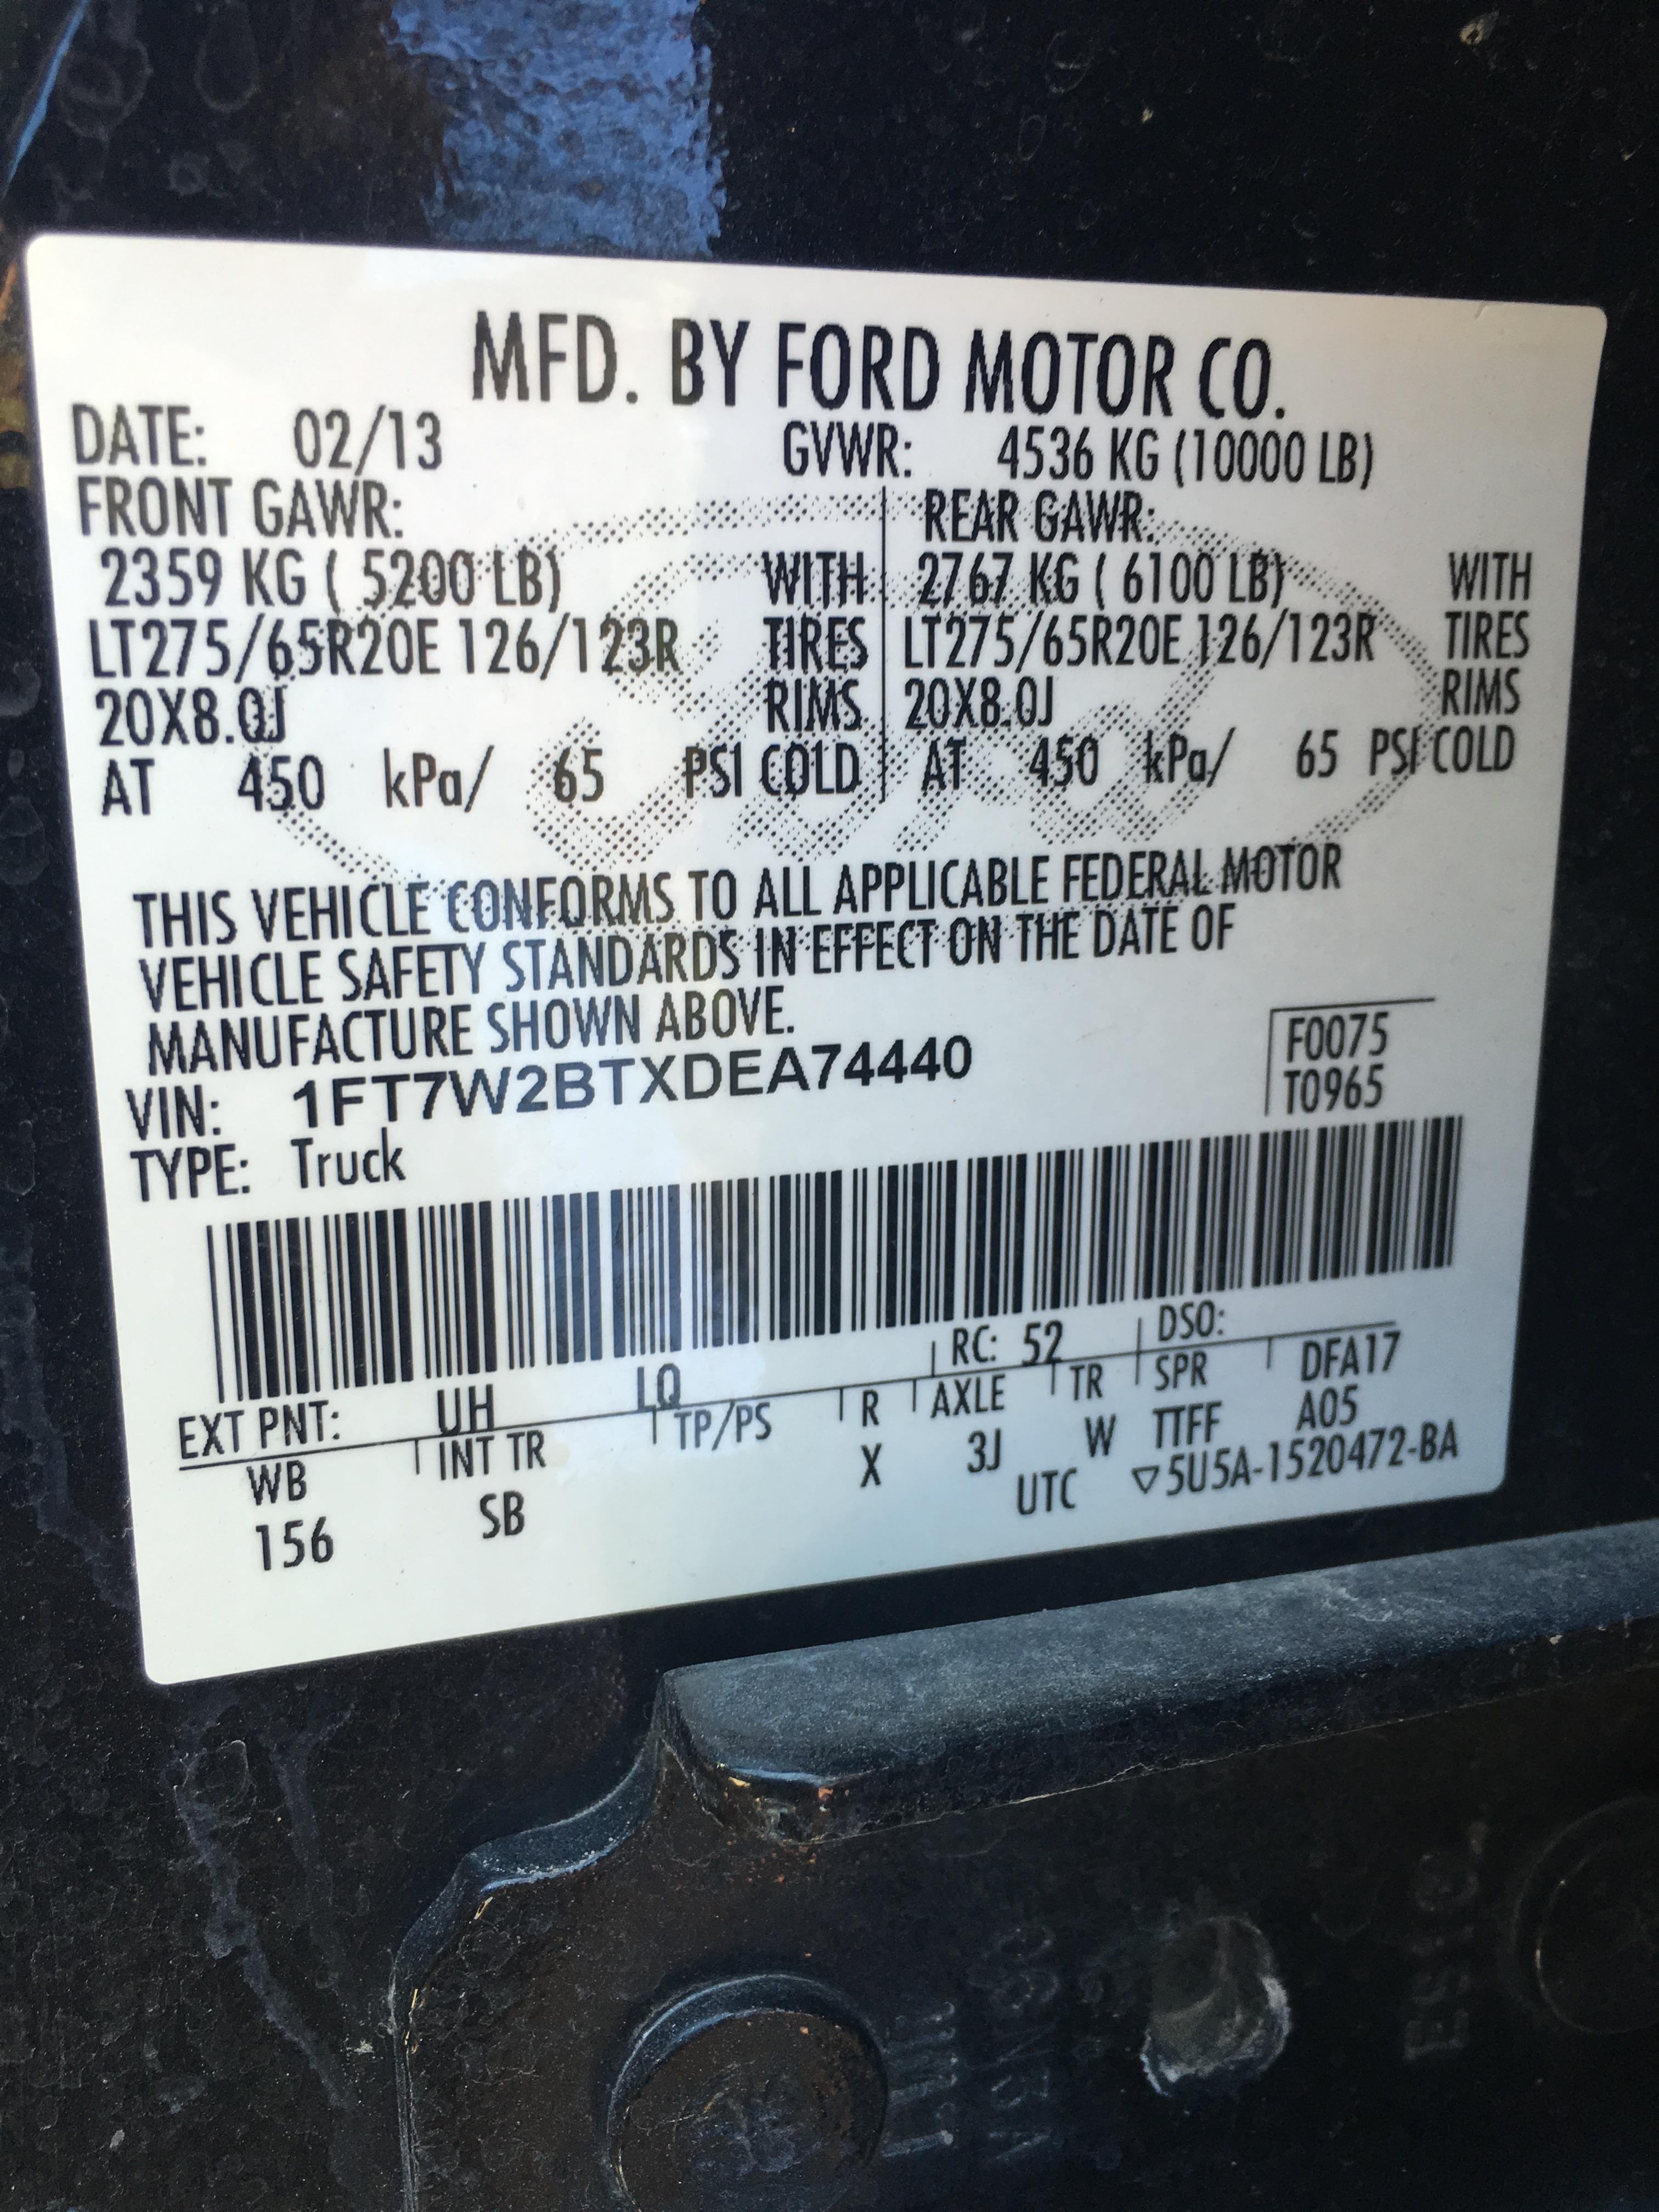 2015 Ram 2500 >> How To Find Rear Axle Ratio - Ford Powerstroke Diesel Forum